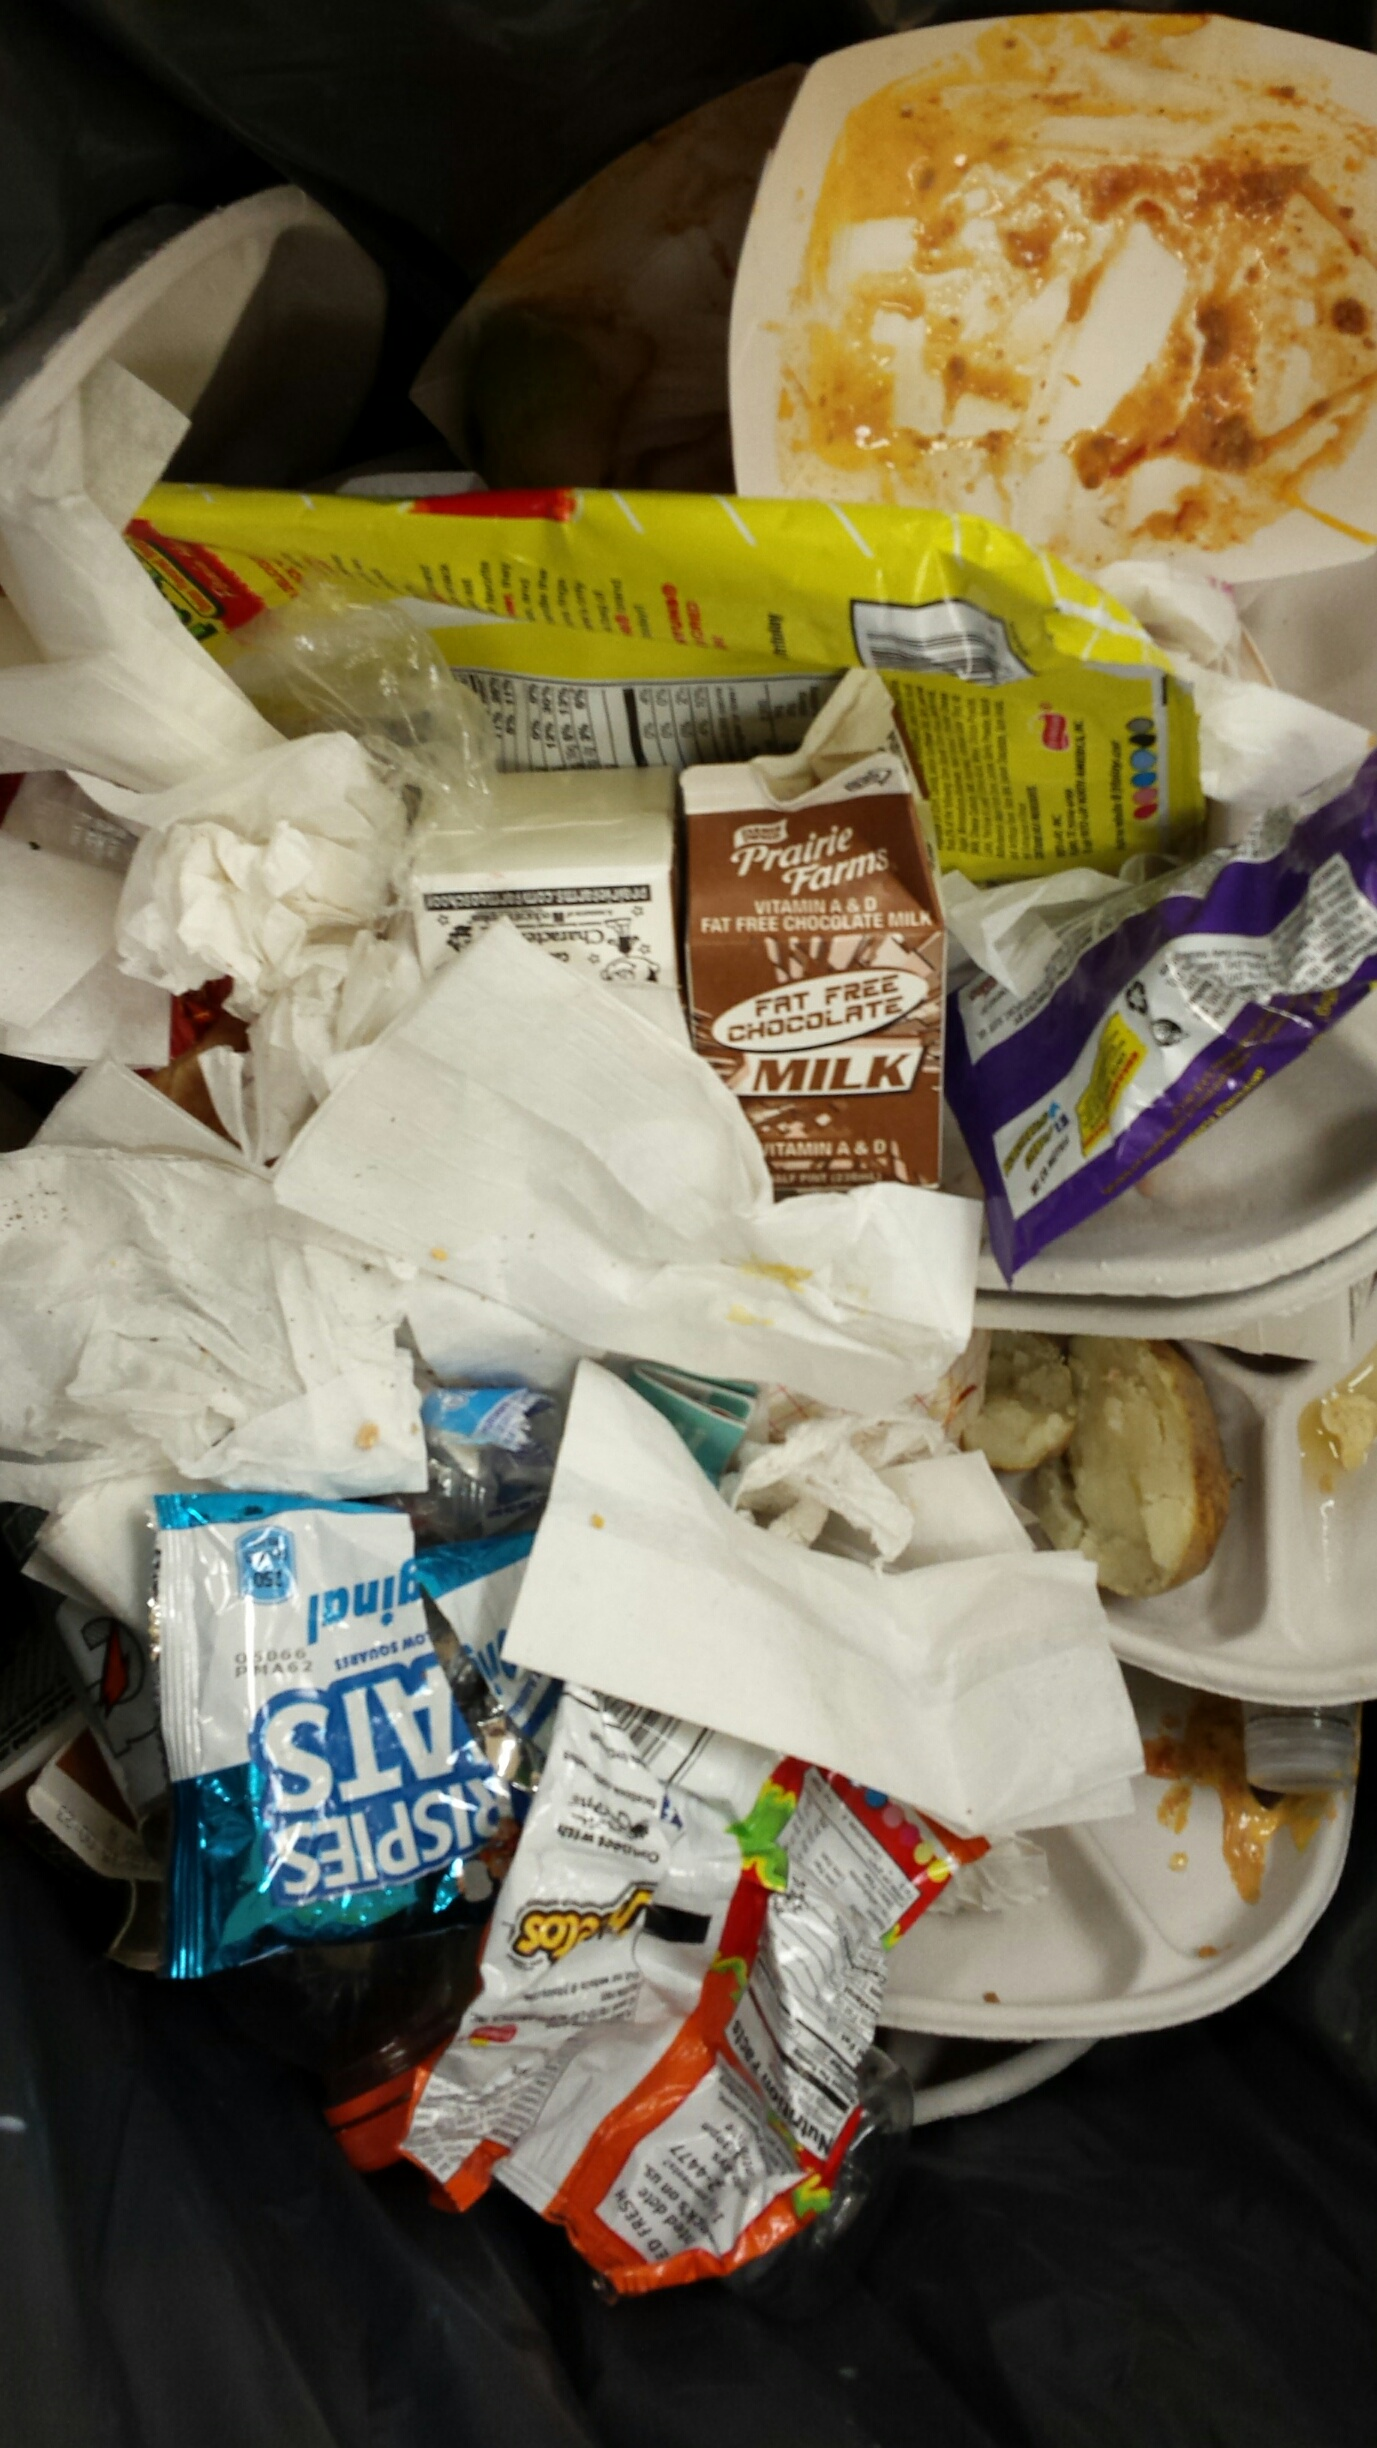 Inside school garbage can. (WBEZ/Monica Eng)